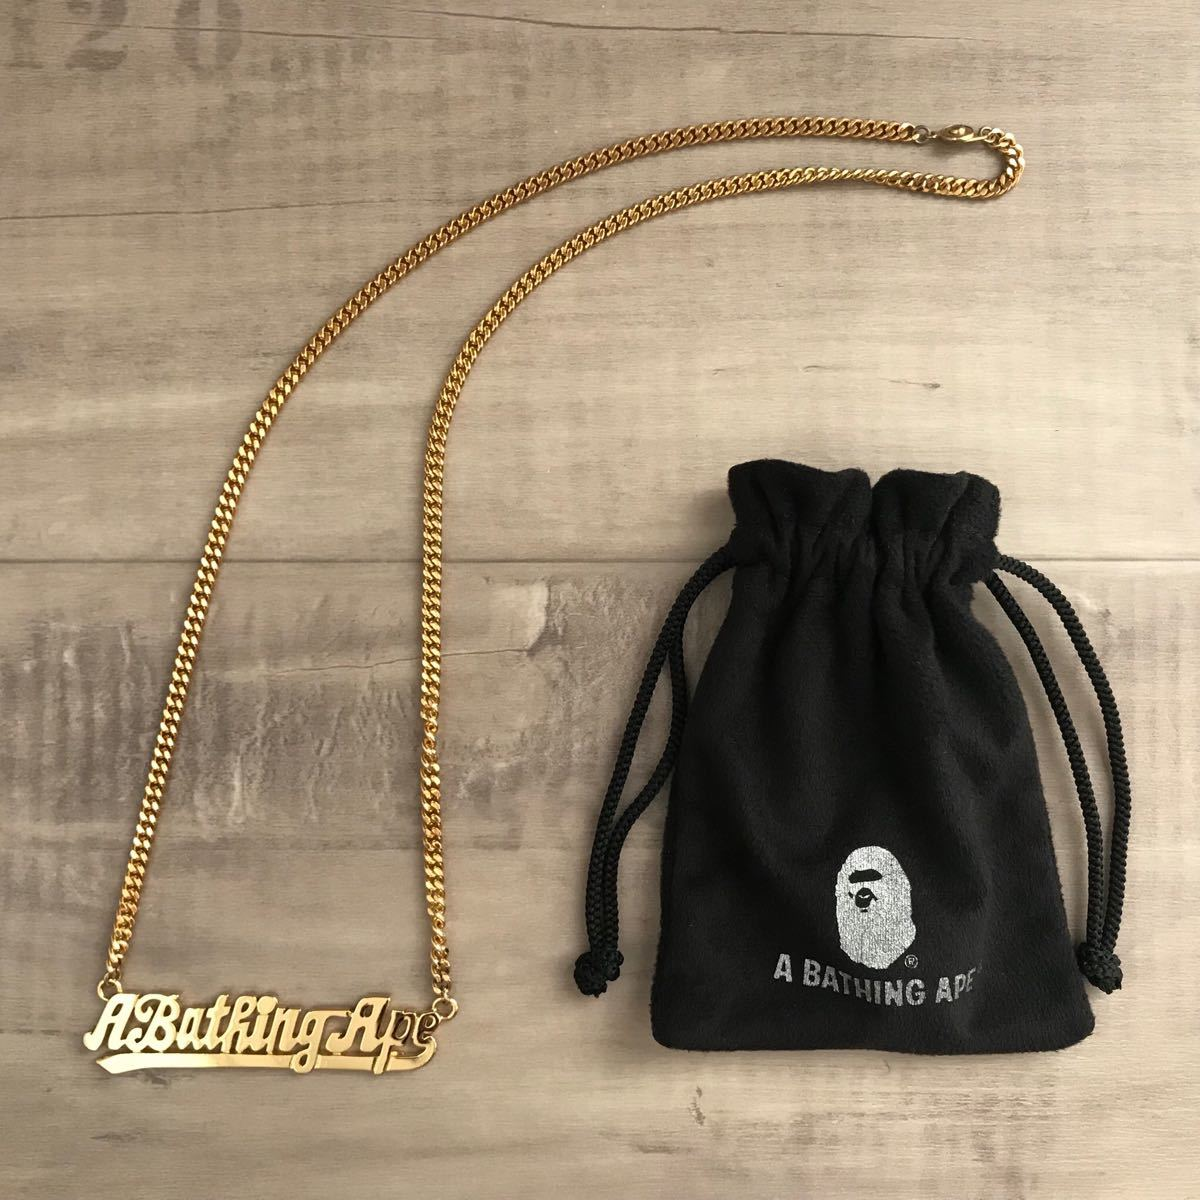 a bathing ape logo gold necklace bape エイプ ベイプ アベイシングエイプ ロゴ ゴールド ネックレス グッズ チェーン